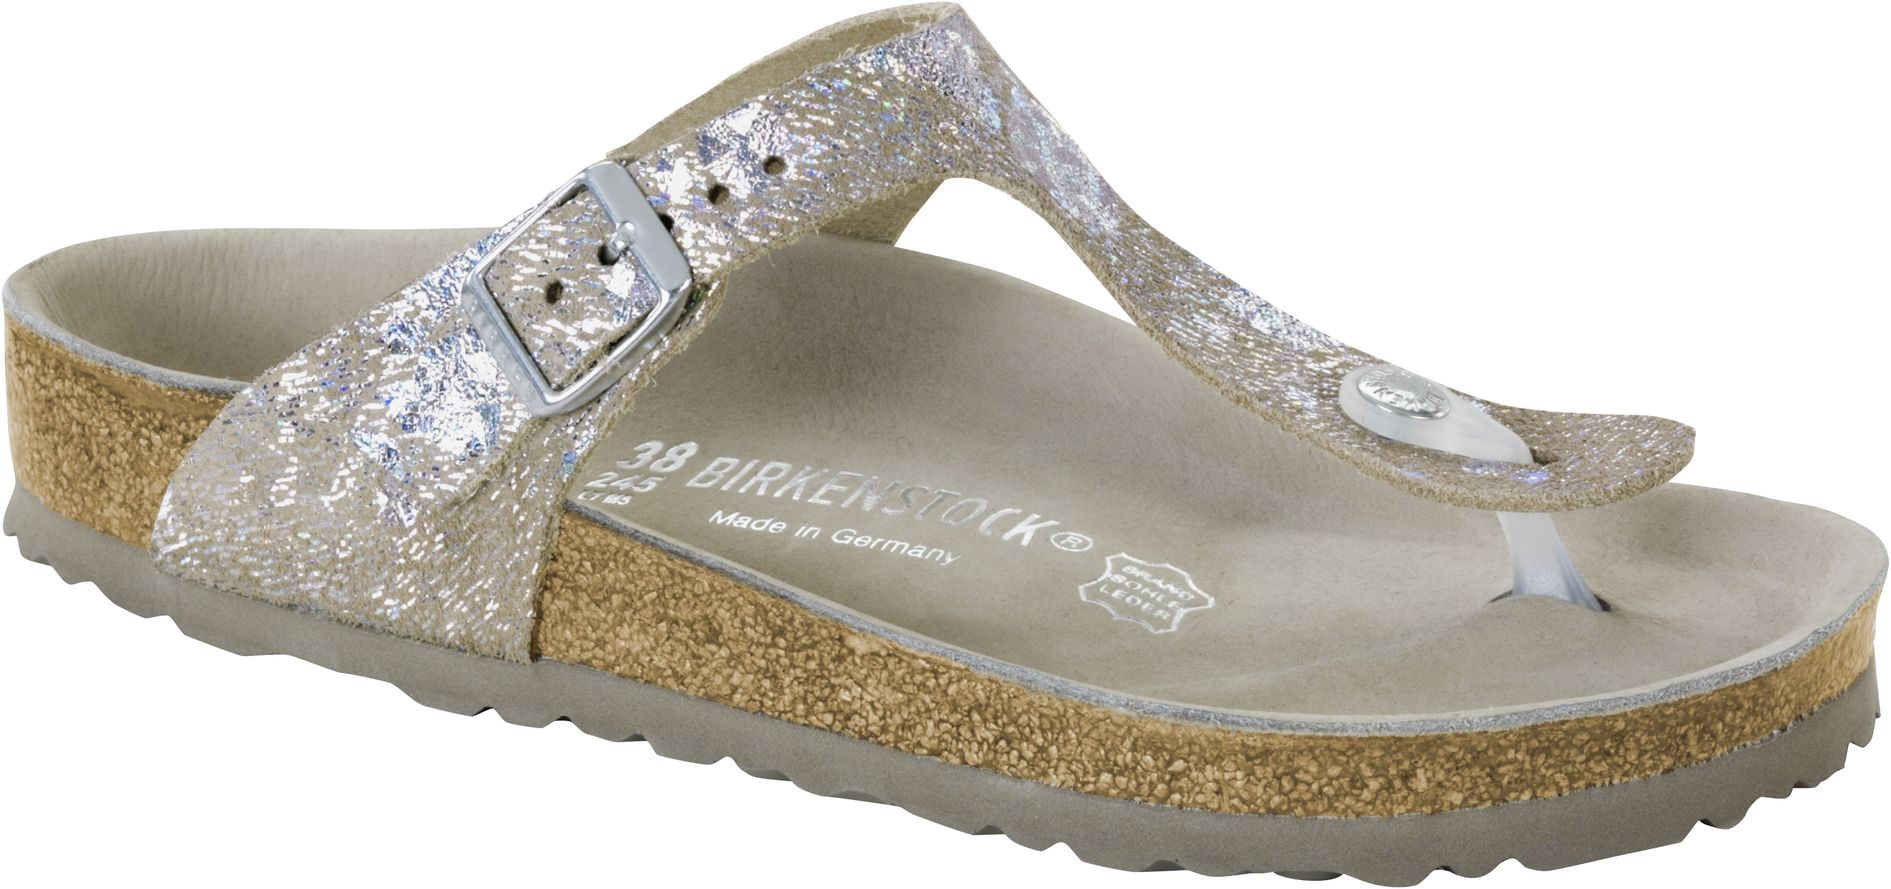 quality design cb828 d6042 Birkenstock Exquisit Gizeh Spotted Metallic Silver